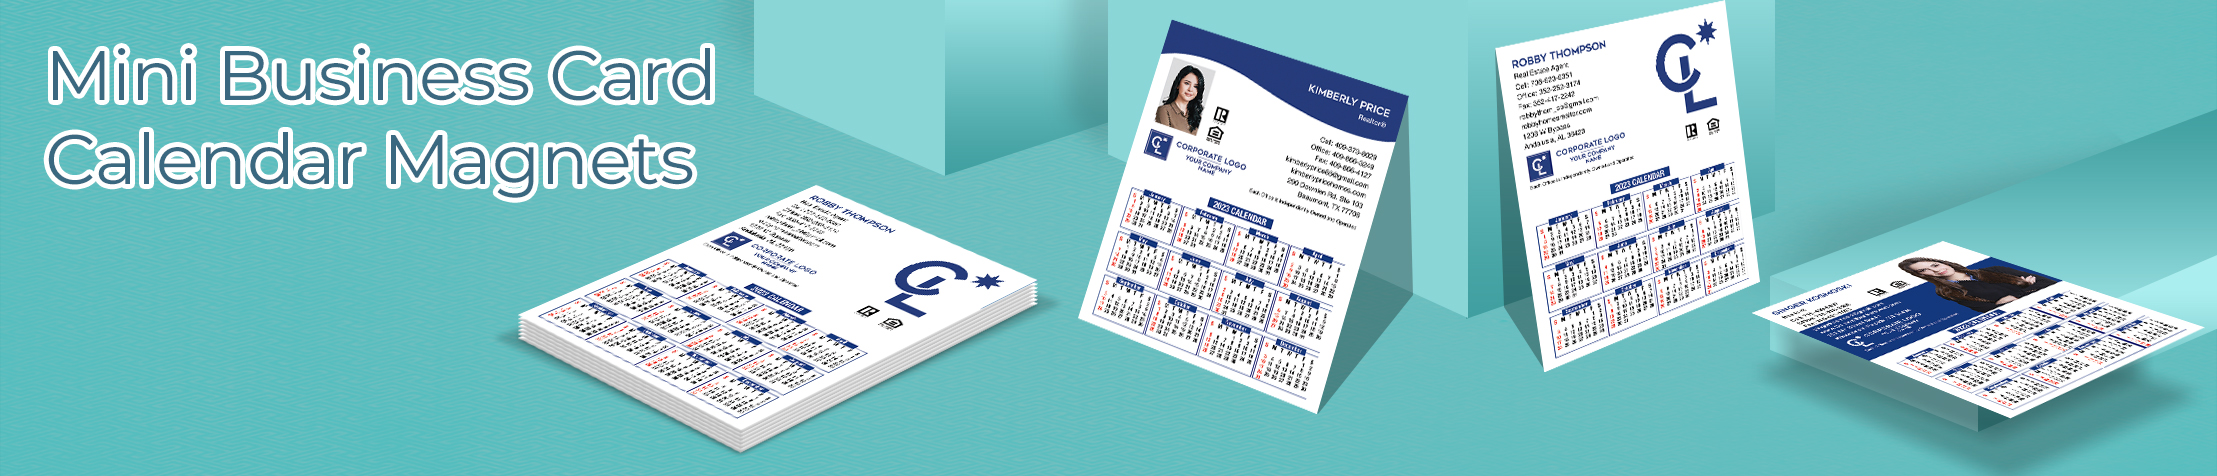 "Coldwell Banker Real Estate Mini Business Card Calendar Magnets - Coldwell Banker 2019 calendars with photo and contact info, 3.5"" by 4.25"" 